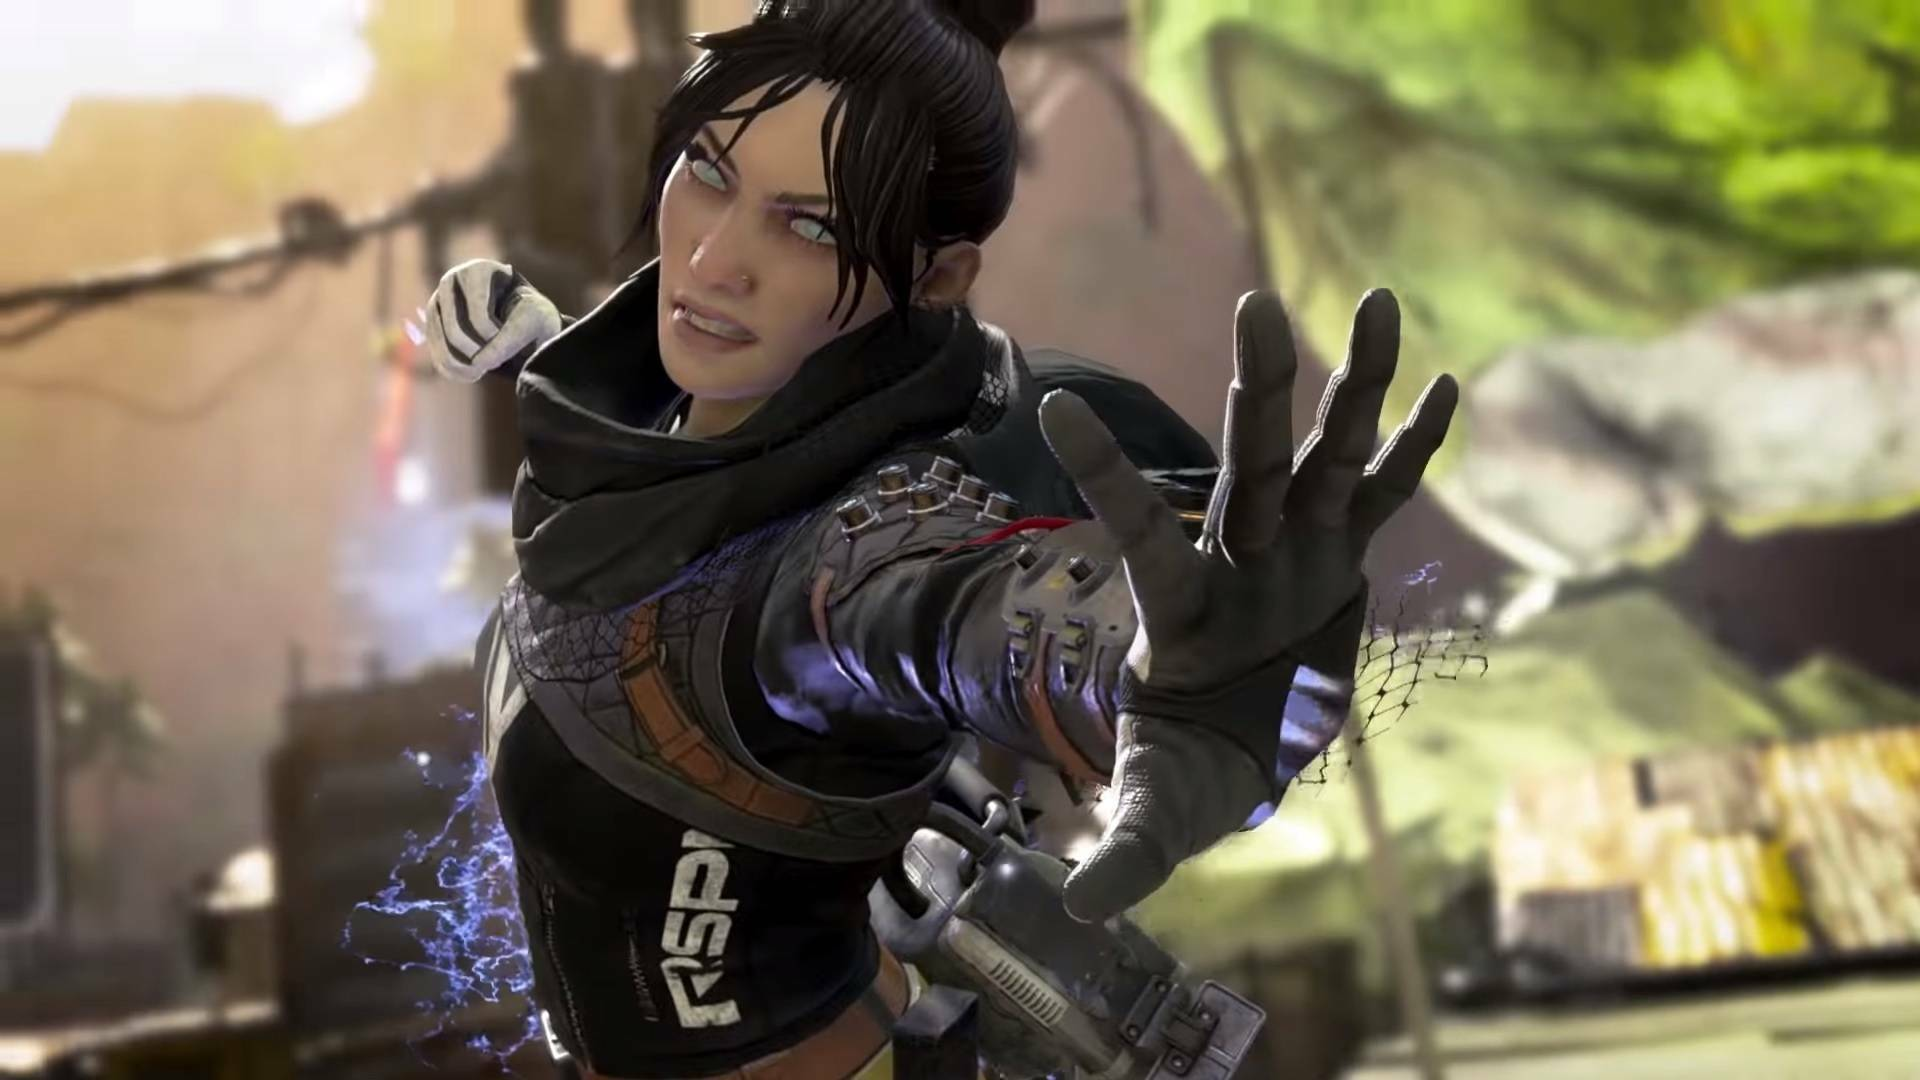 Apex Legends in Advanced Negotiations for Release on Mobile